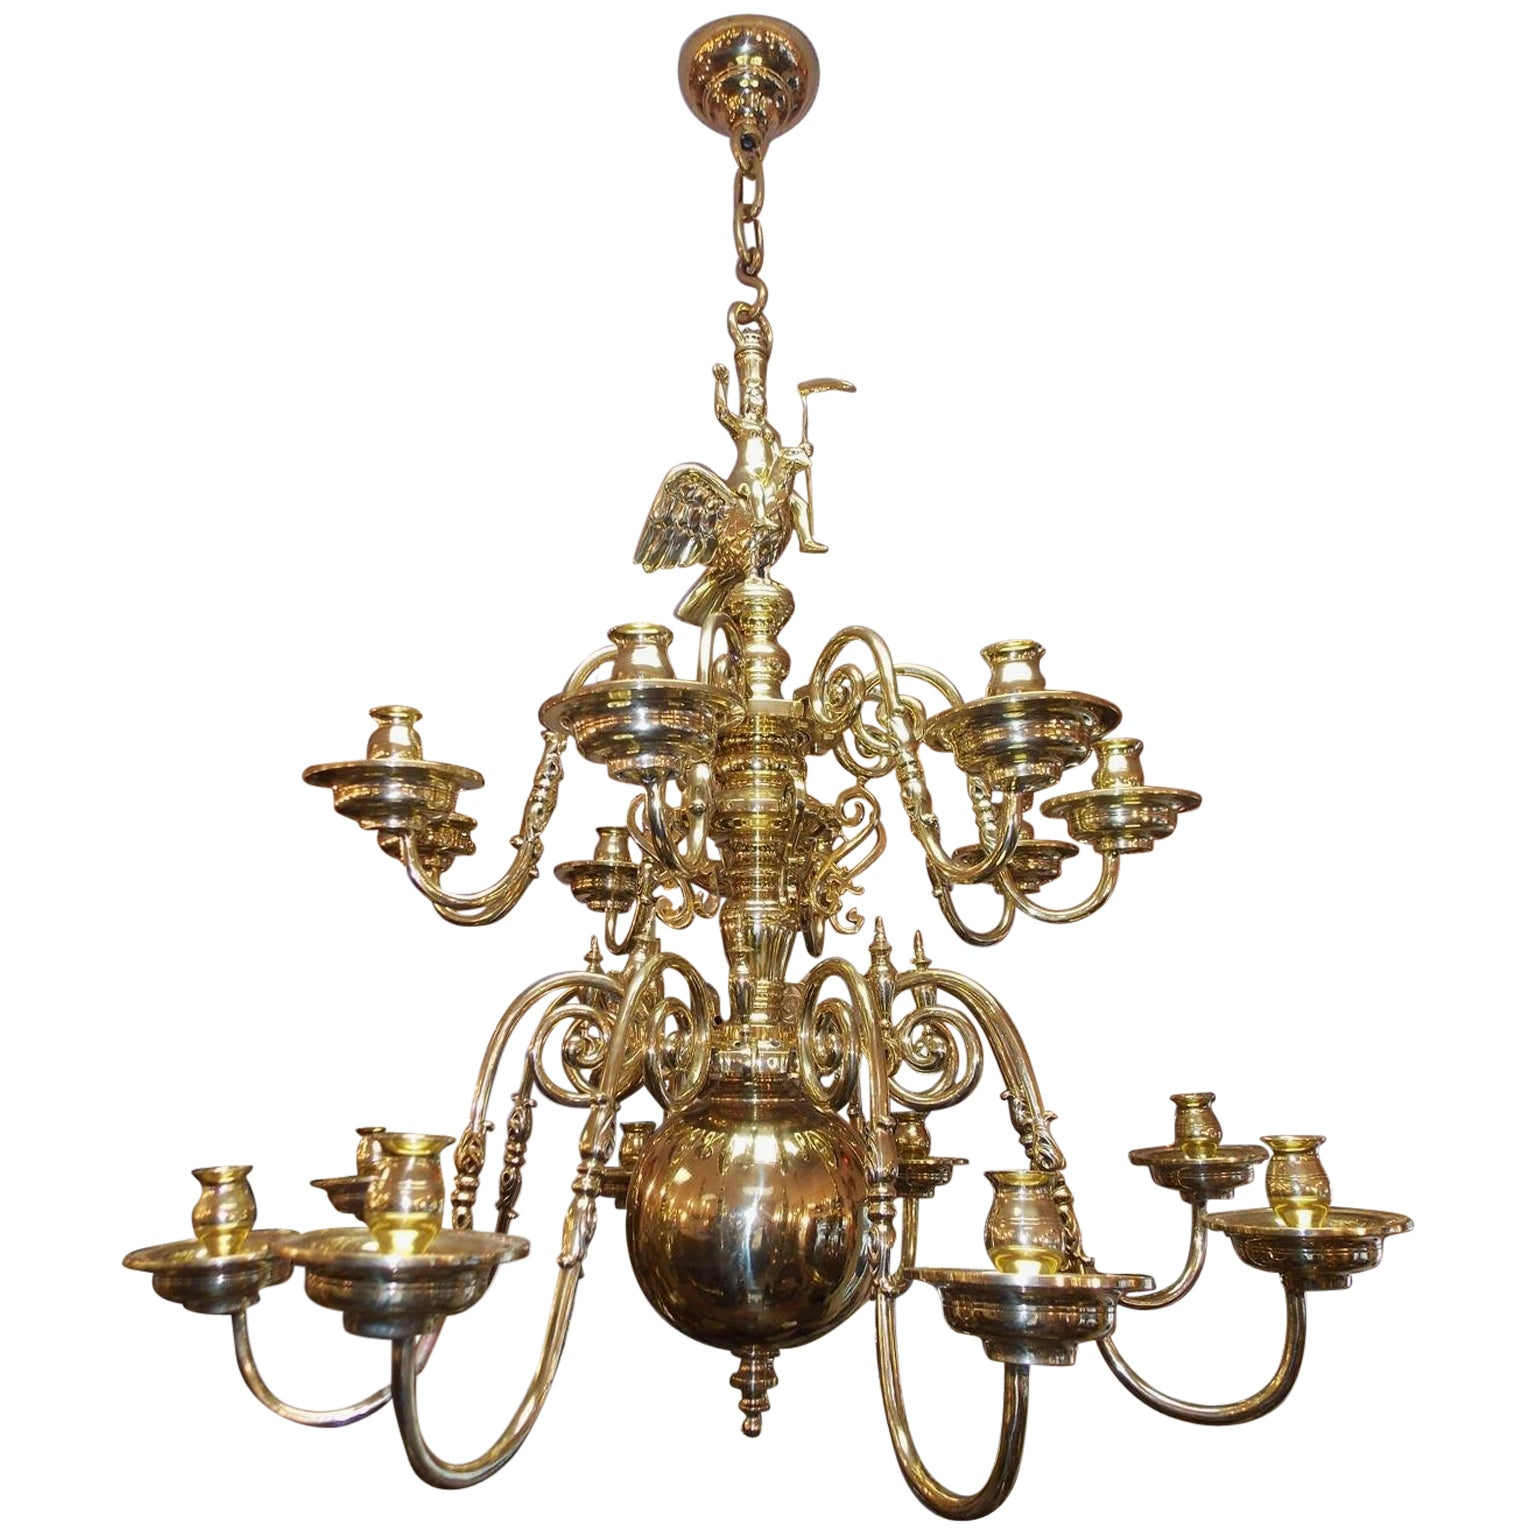 Dutch Colonial Brass Two-Tier Bulbous Figural and Eagle Chandelier, Circa 1780